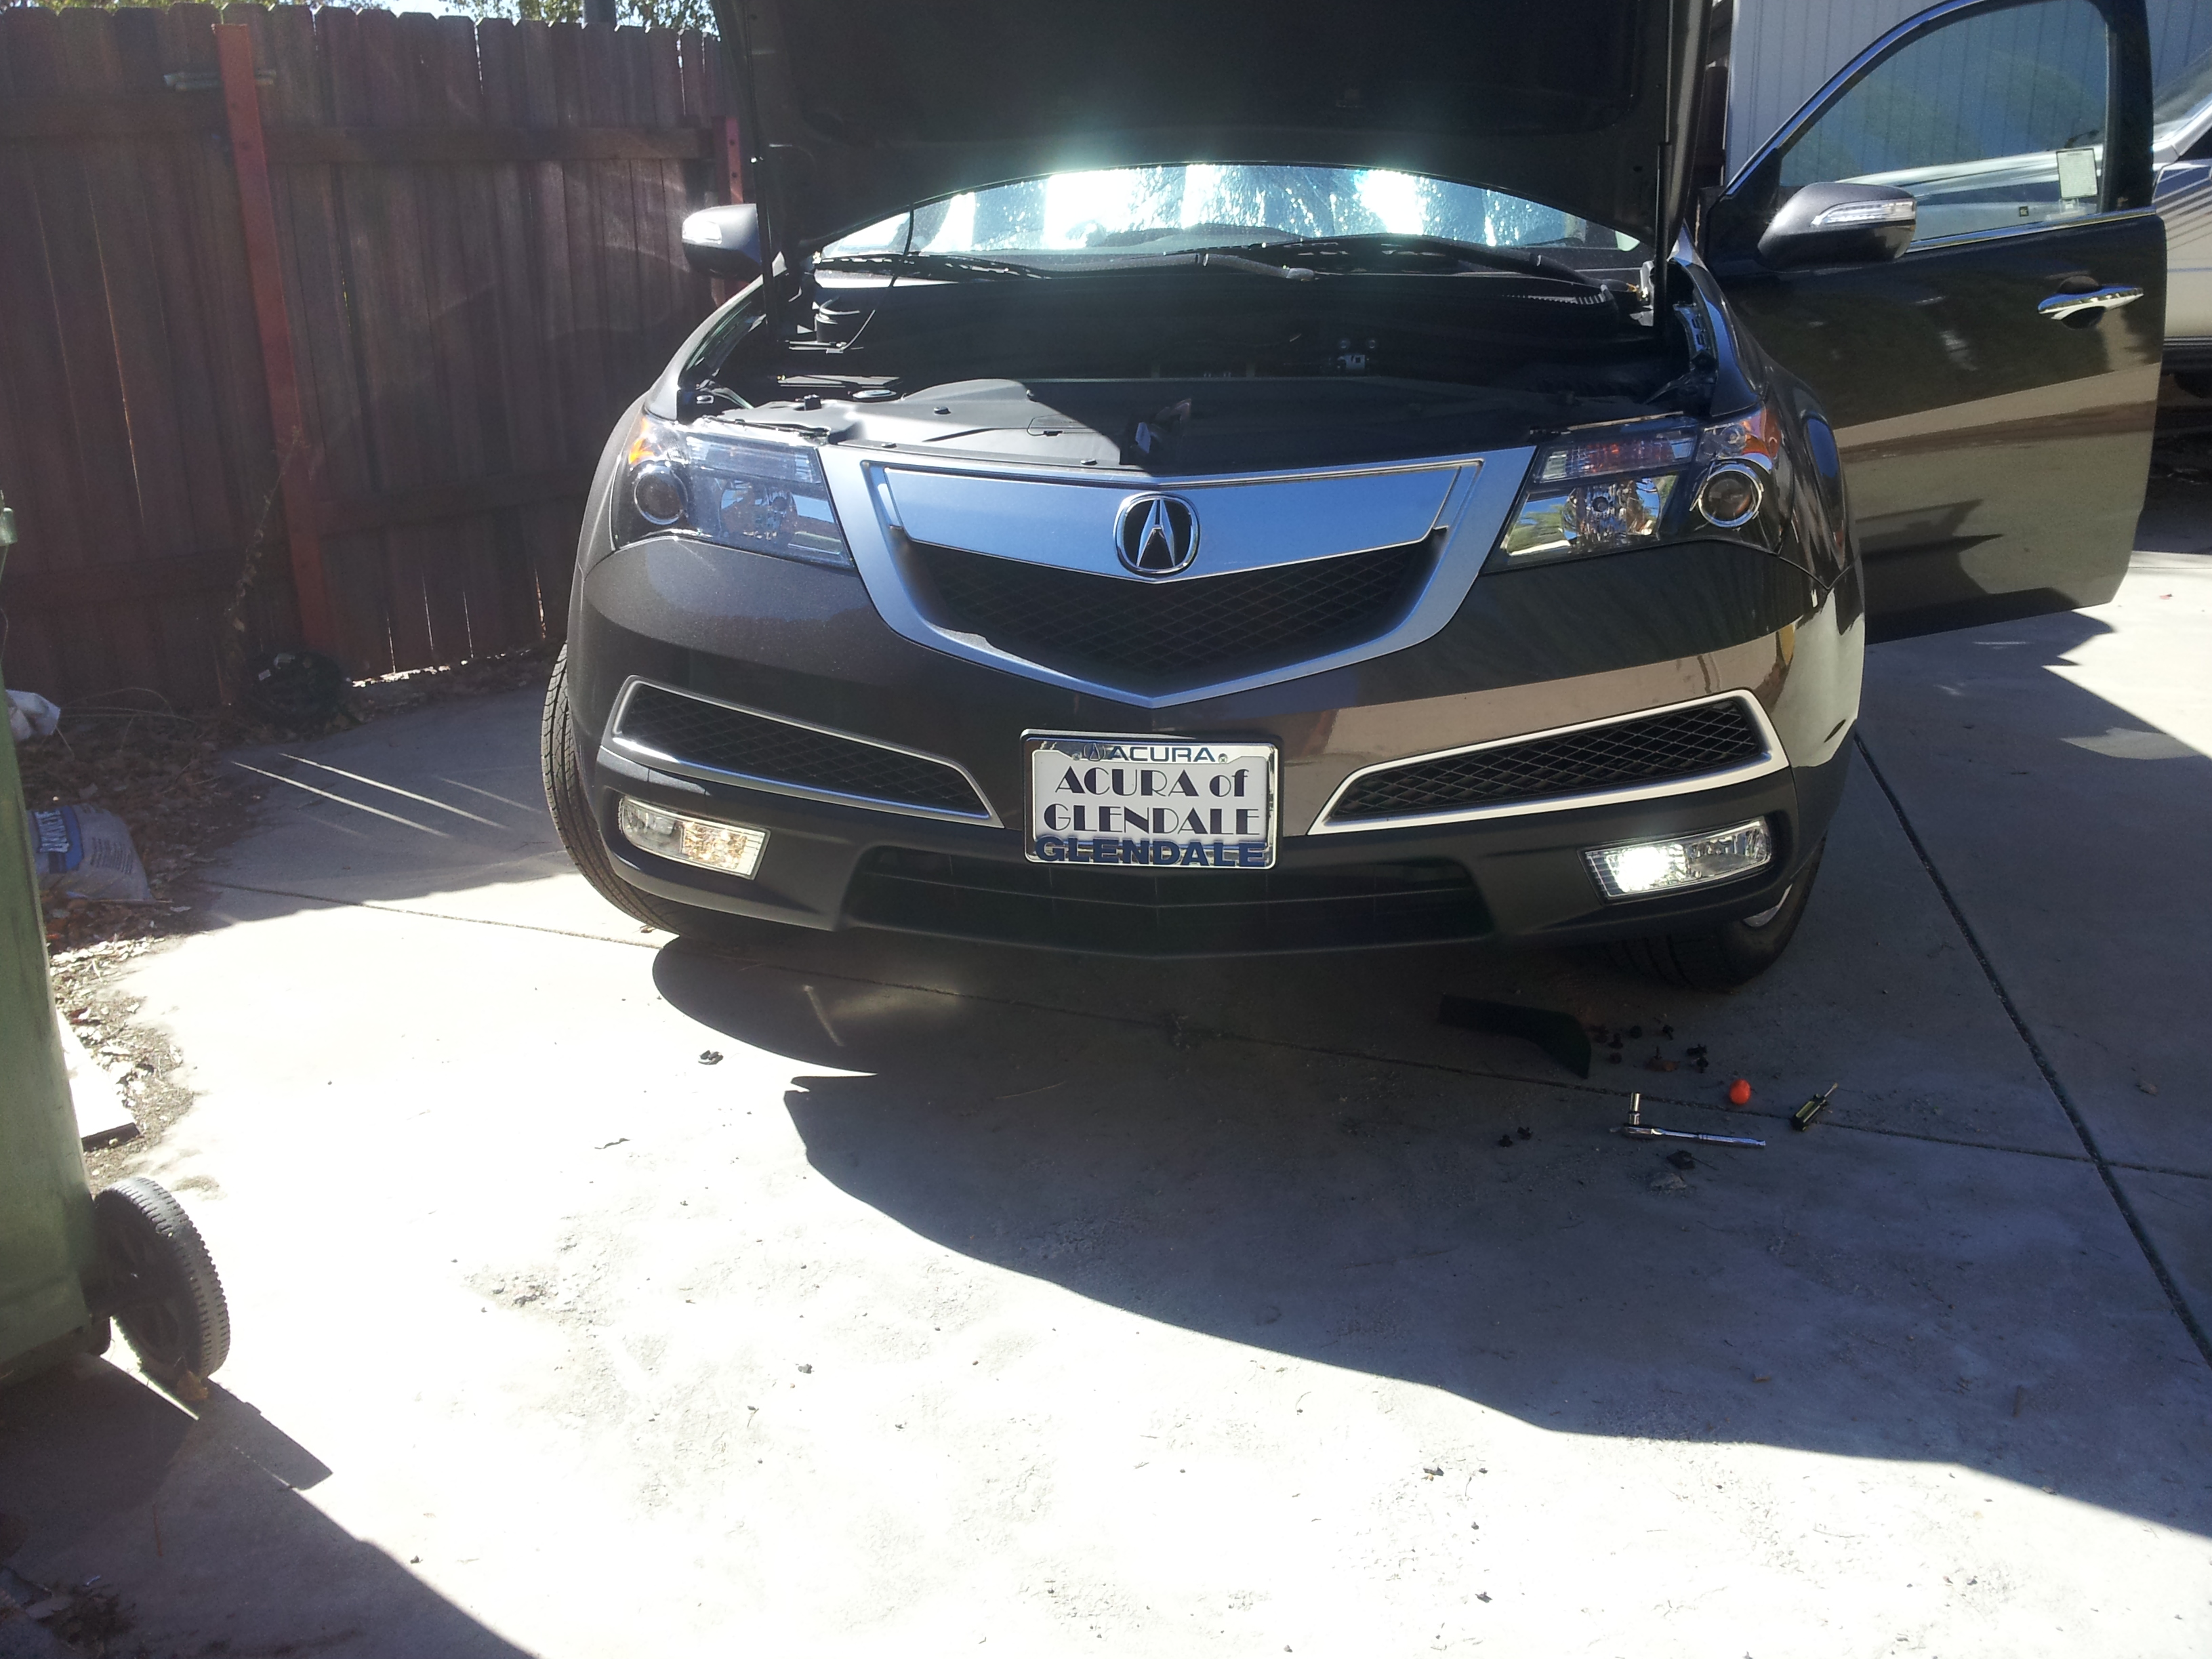 HID Fog/LED DRL Installed - PICS-20121025_133522.jpg